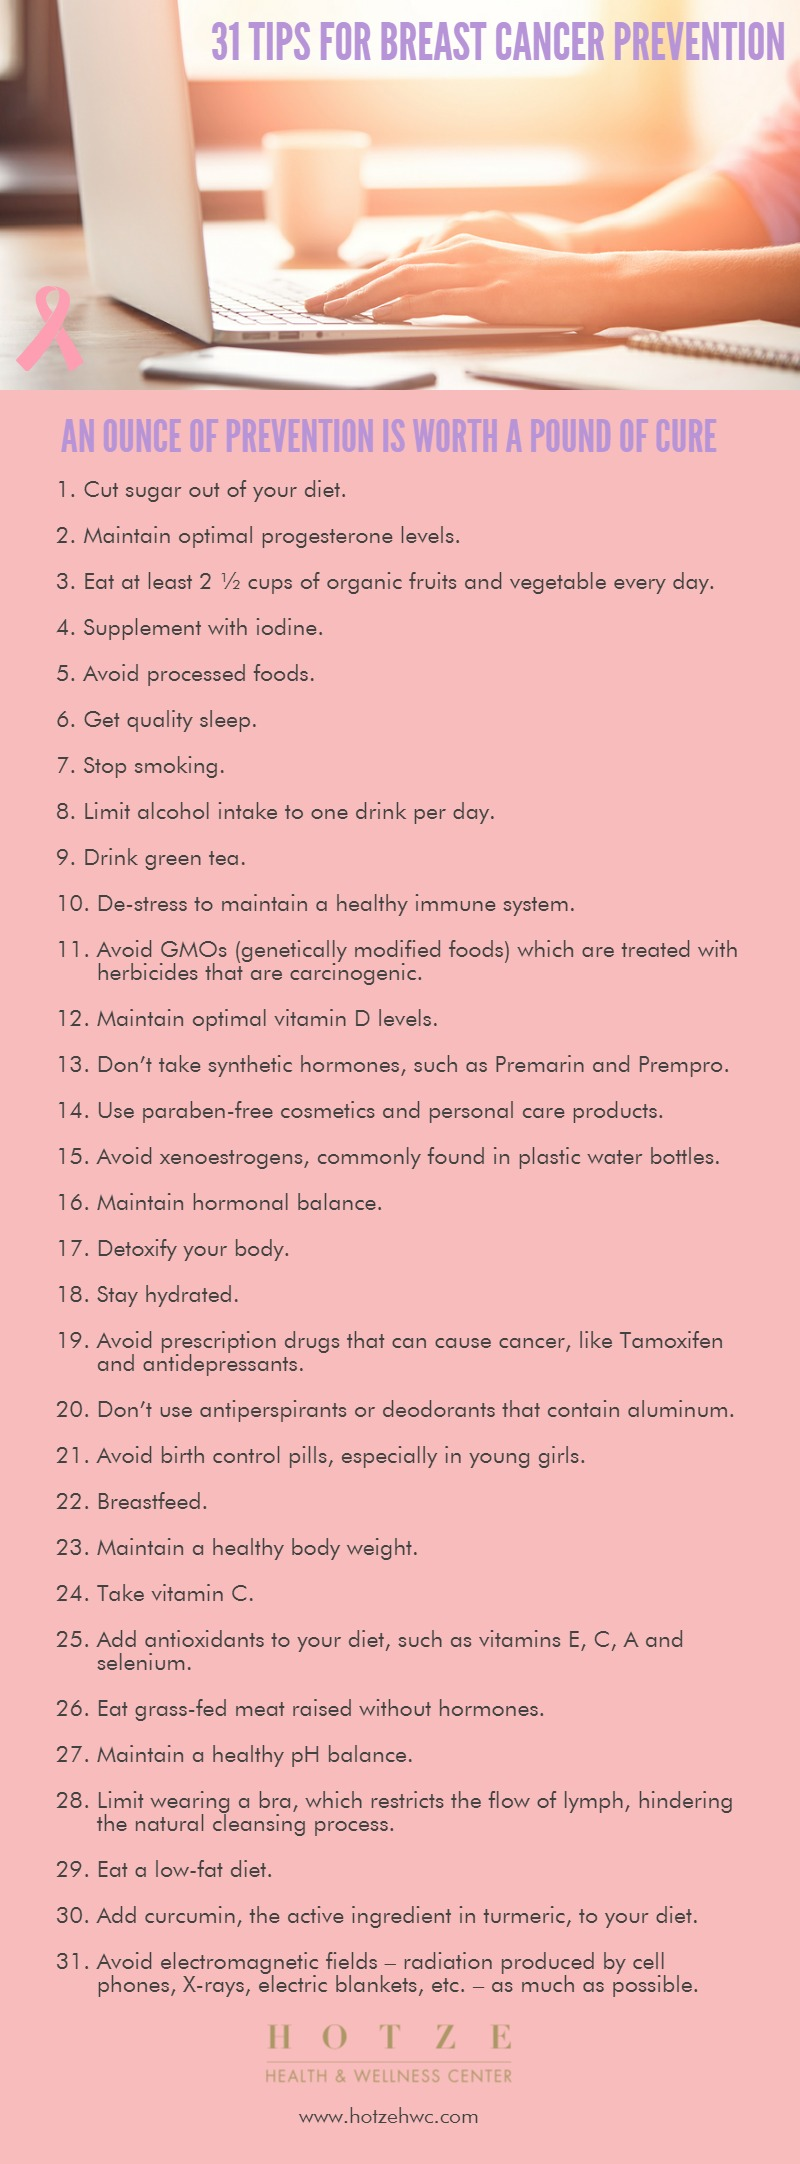 31 Tips for Breast Cancer Prevention